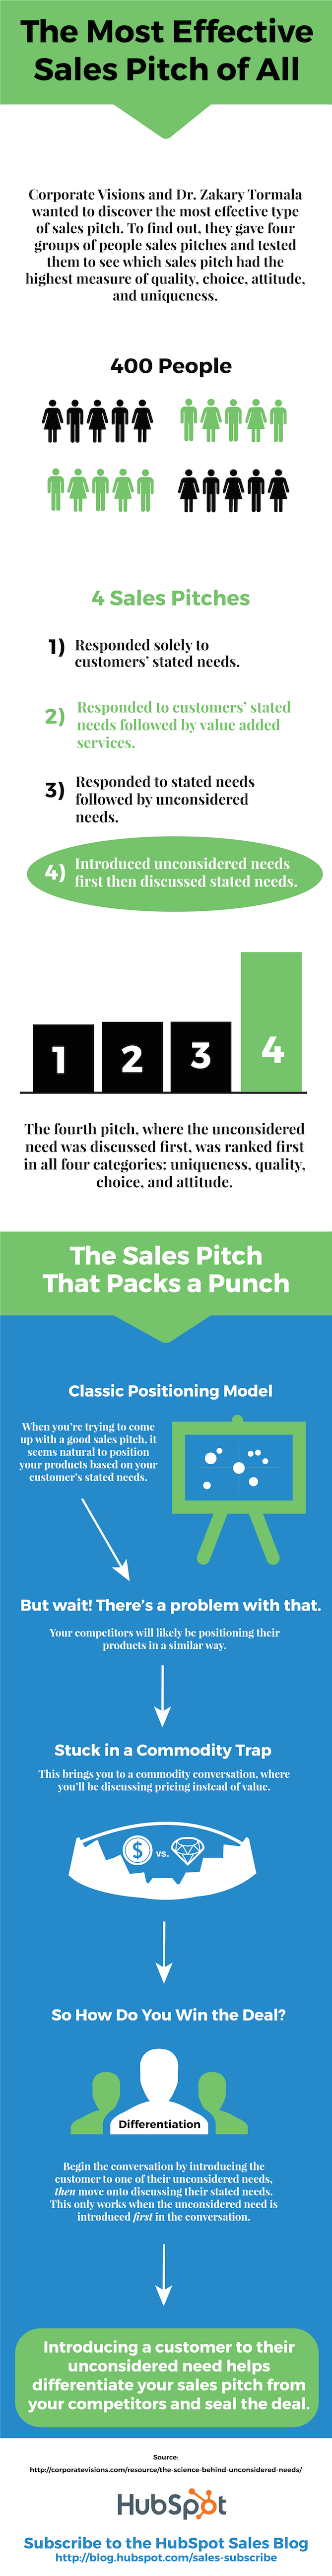 The 1 Factor That Truly Differentiates A Sales Pitch New